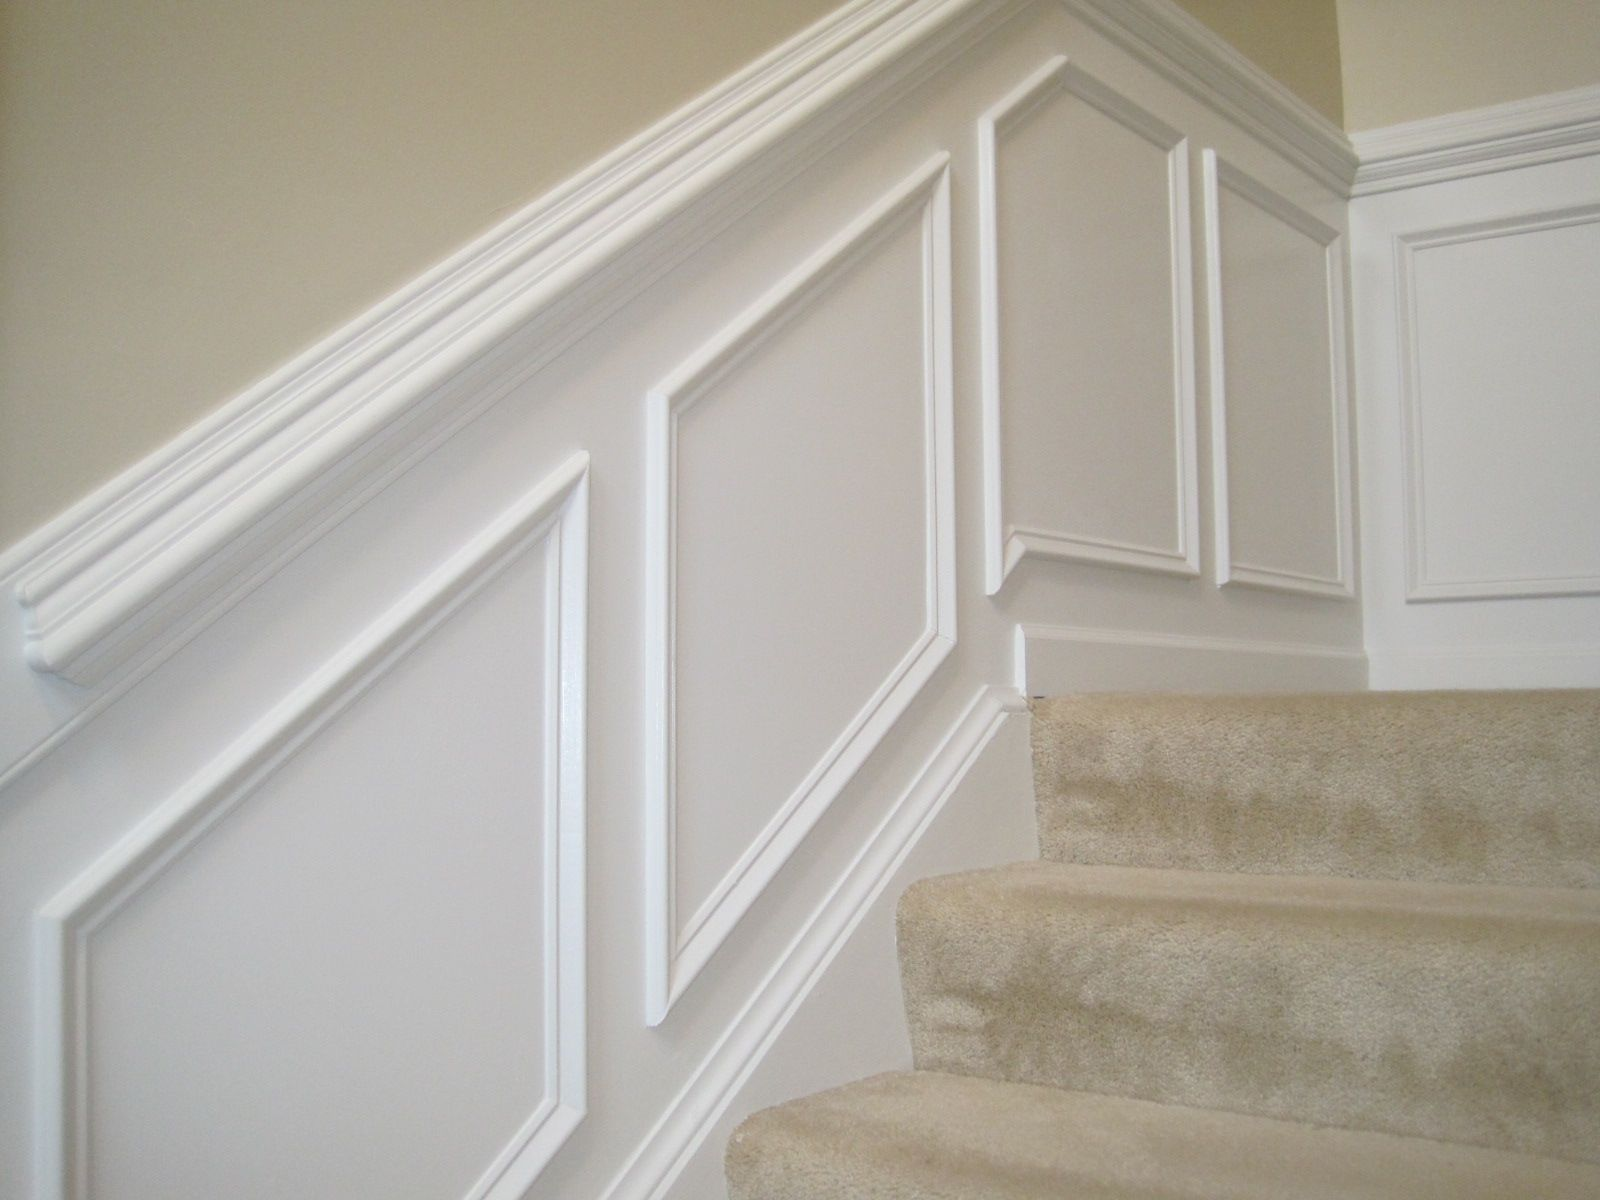 Chair Moulding Ideas Steel Feet Rail Molding To Beef Up The We First Added A Four Inch Base Piece